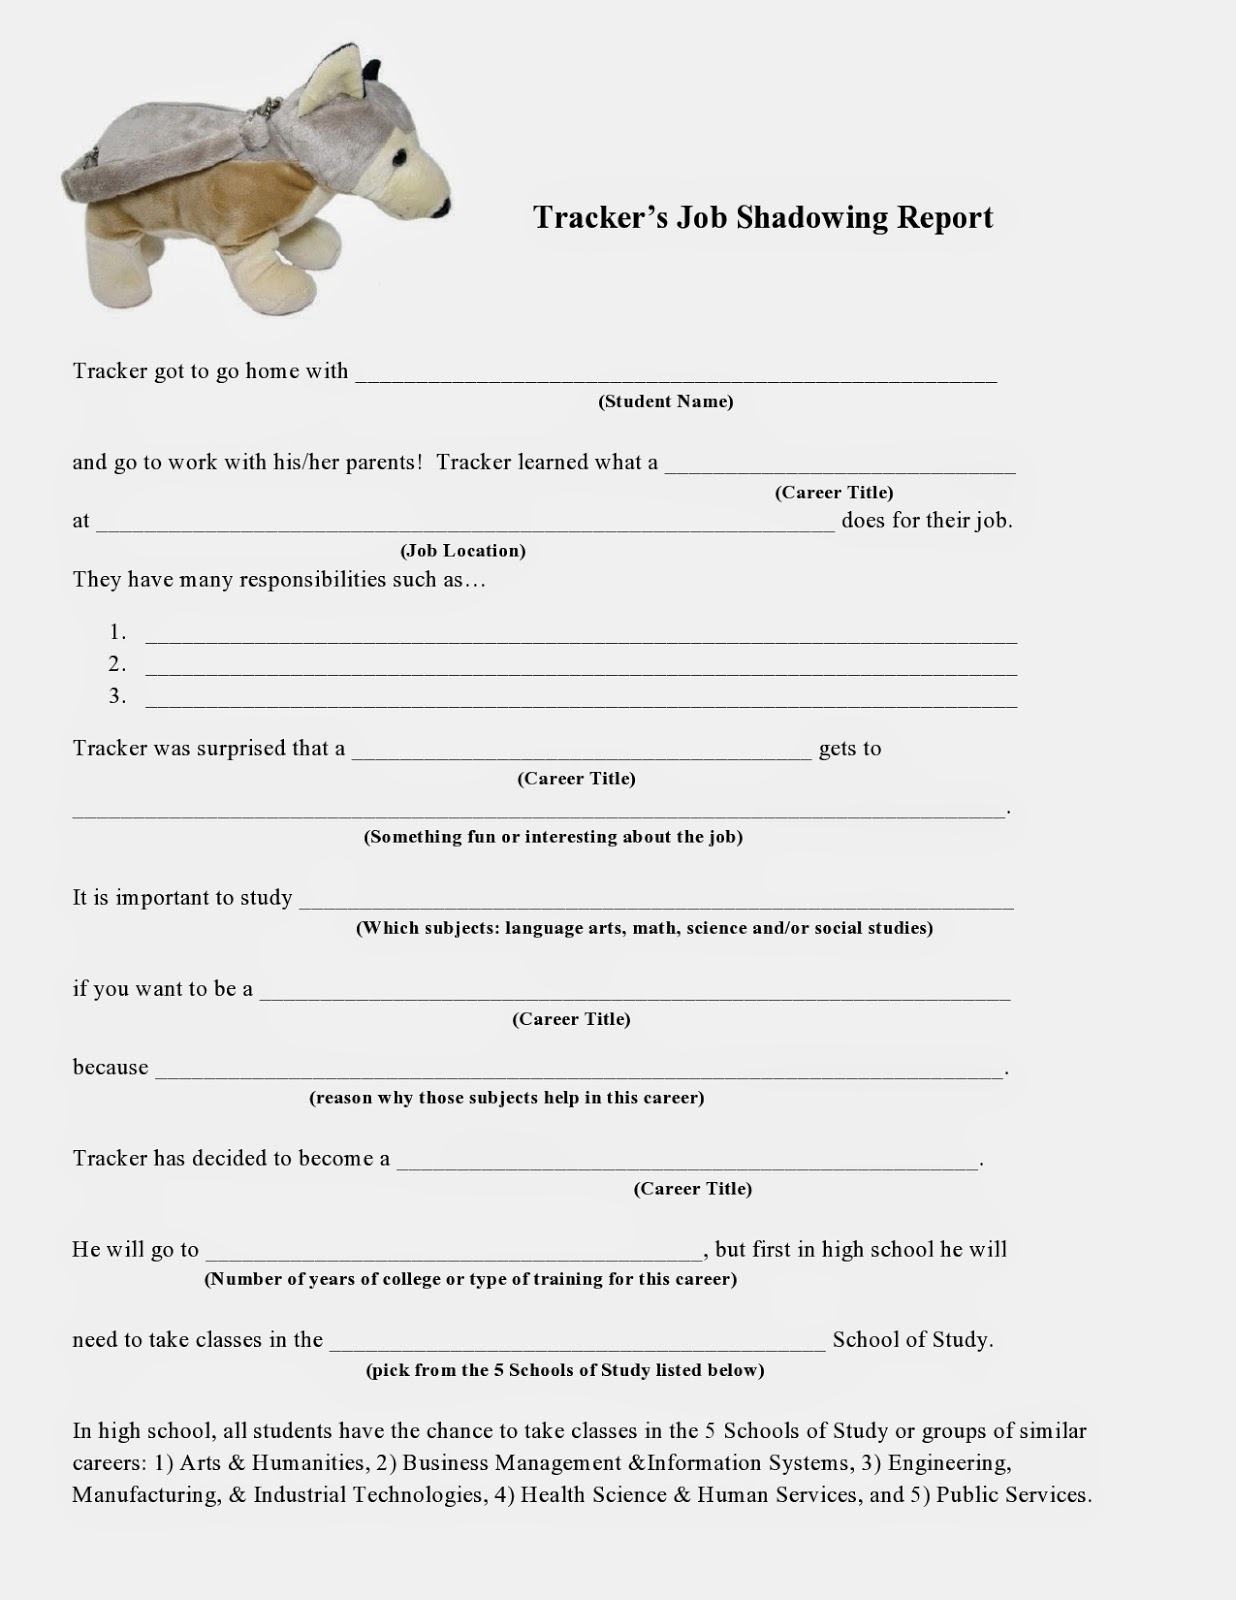 the creative counselor tracker sniffing out the many careers in report form